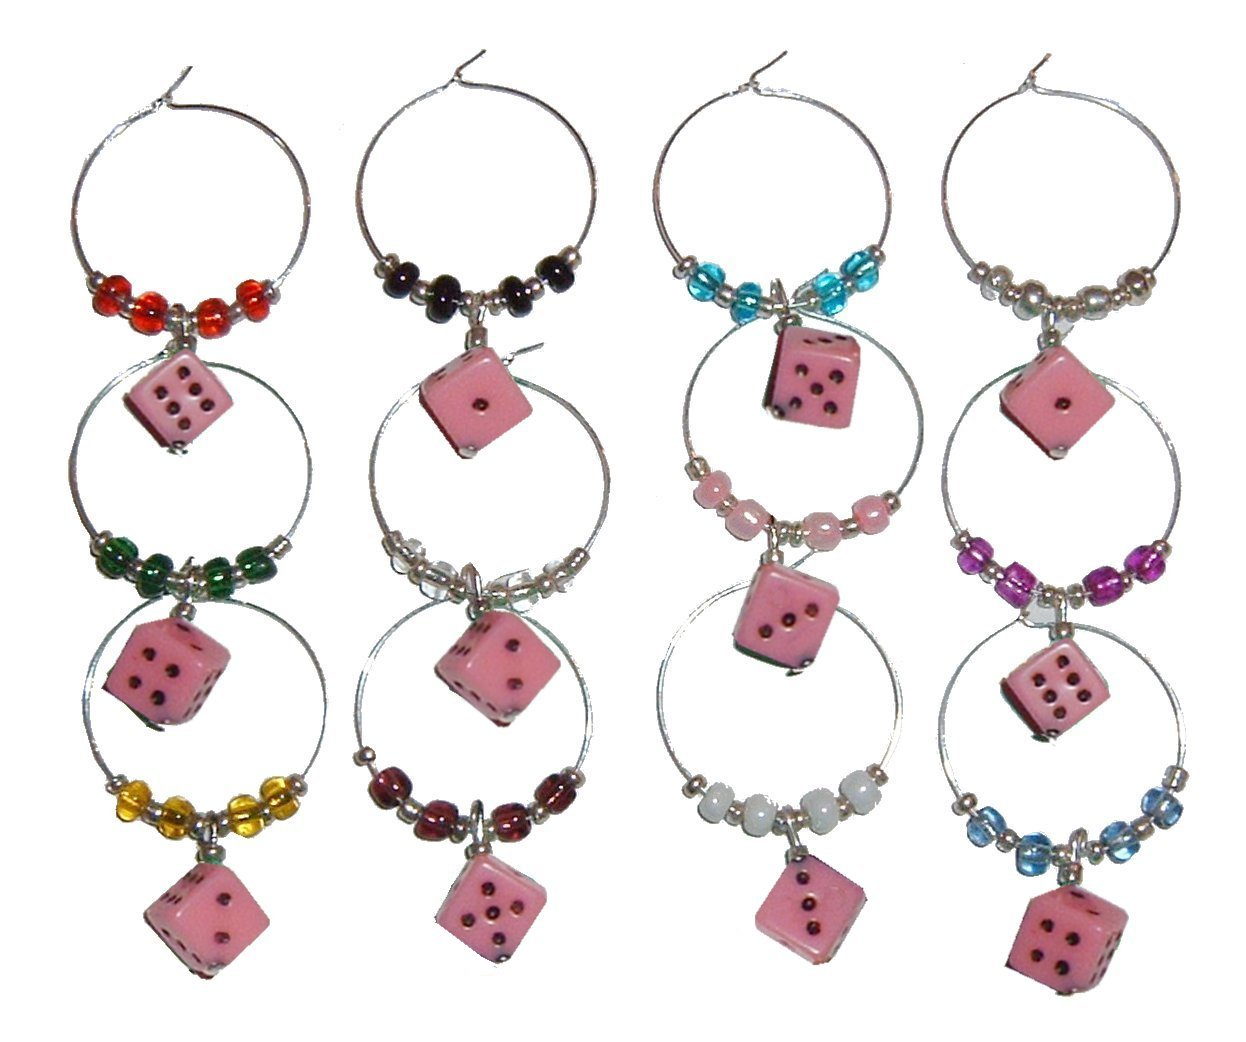 Hot Pink Dice Wine Charms with Pouch - 1 Dozen